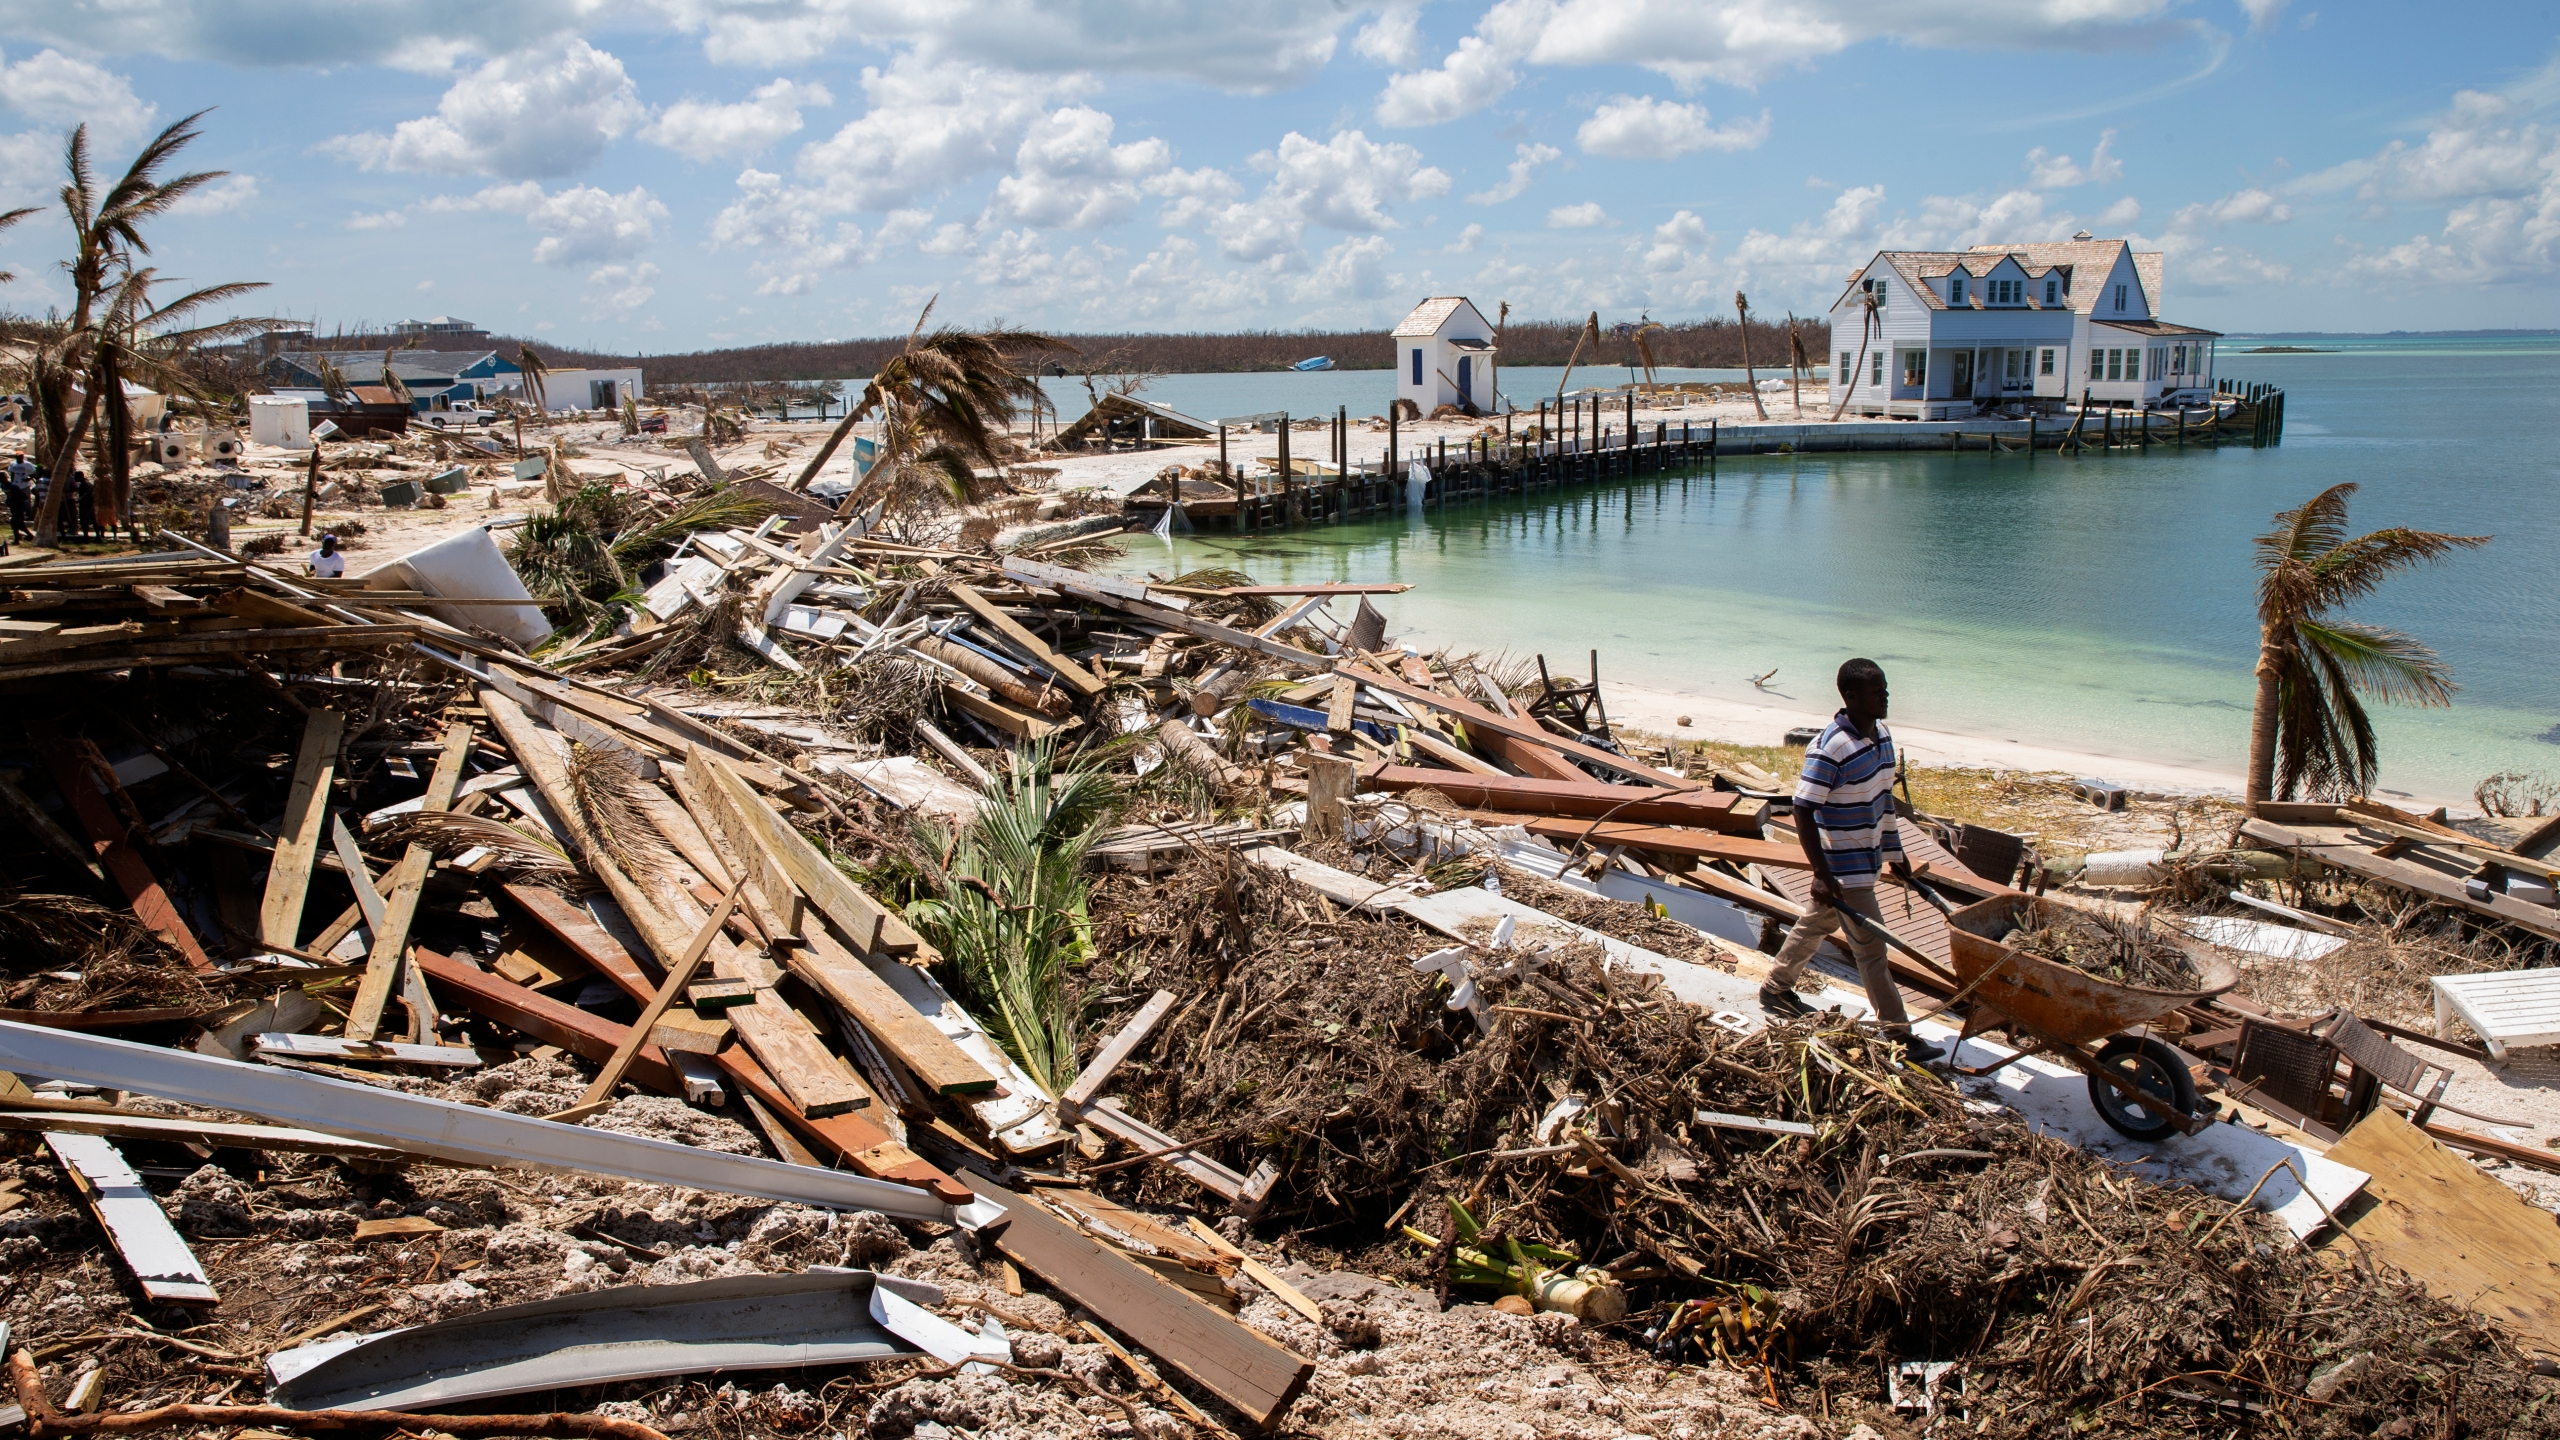 Workers clean debris at the Abaco Inn in Hurricane Dorian-devastated Elbow Key Island on Sept. 7, 2019 the Bahamas. (Credit: Jose Jimenez/Getty Images)